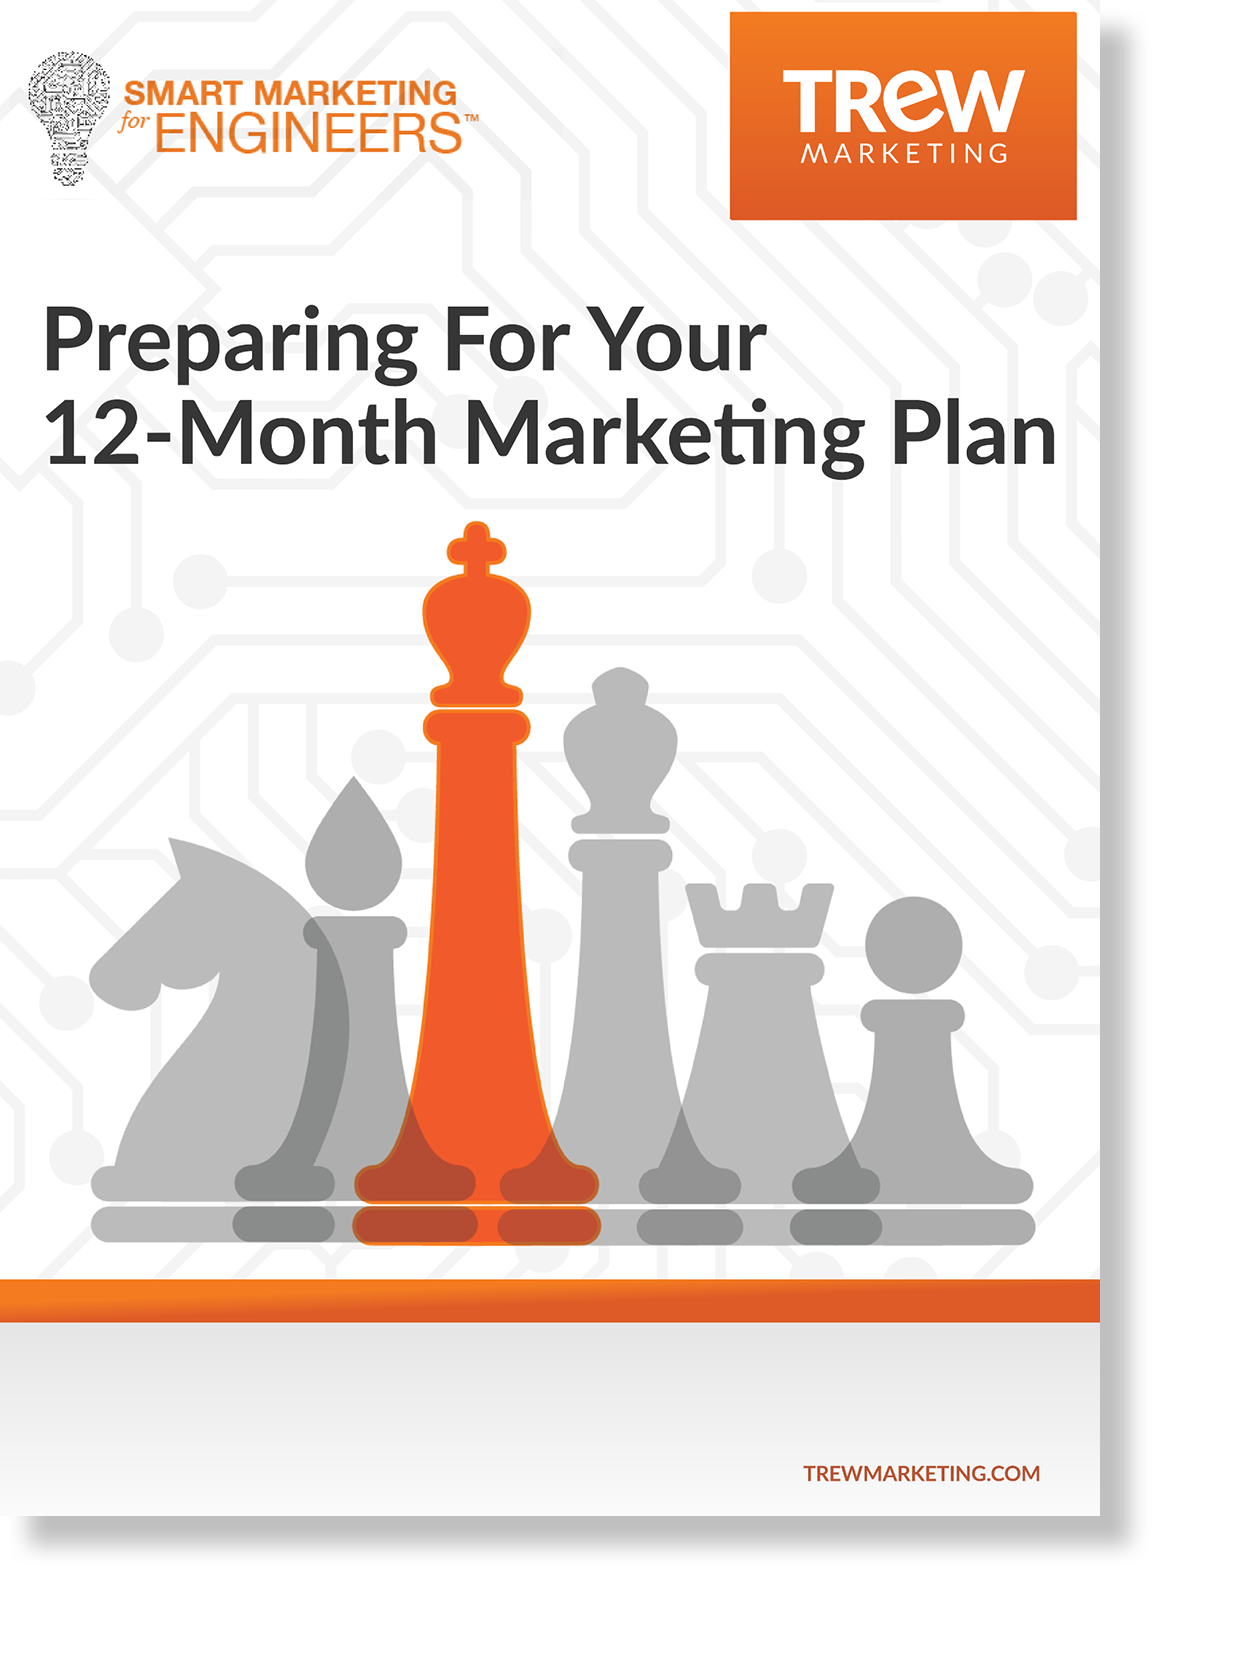 Prep_for_12-mo_Mktg_Plan